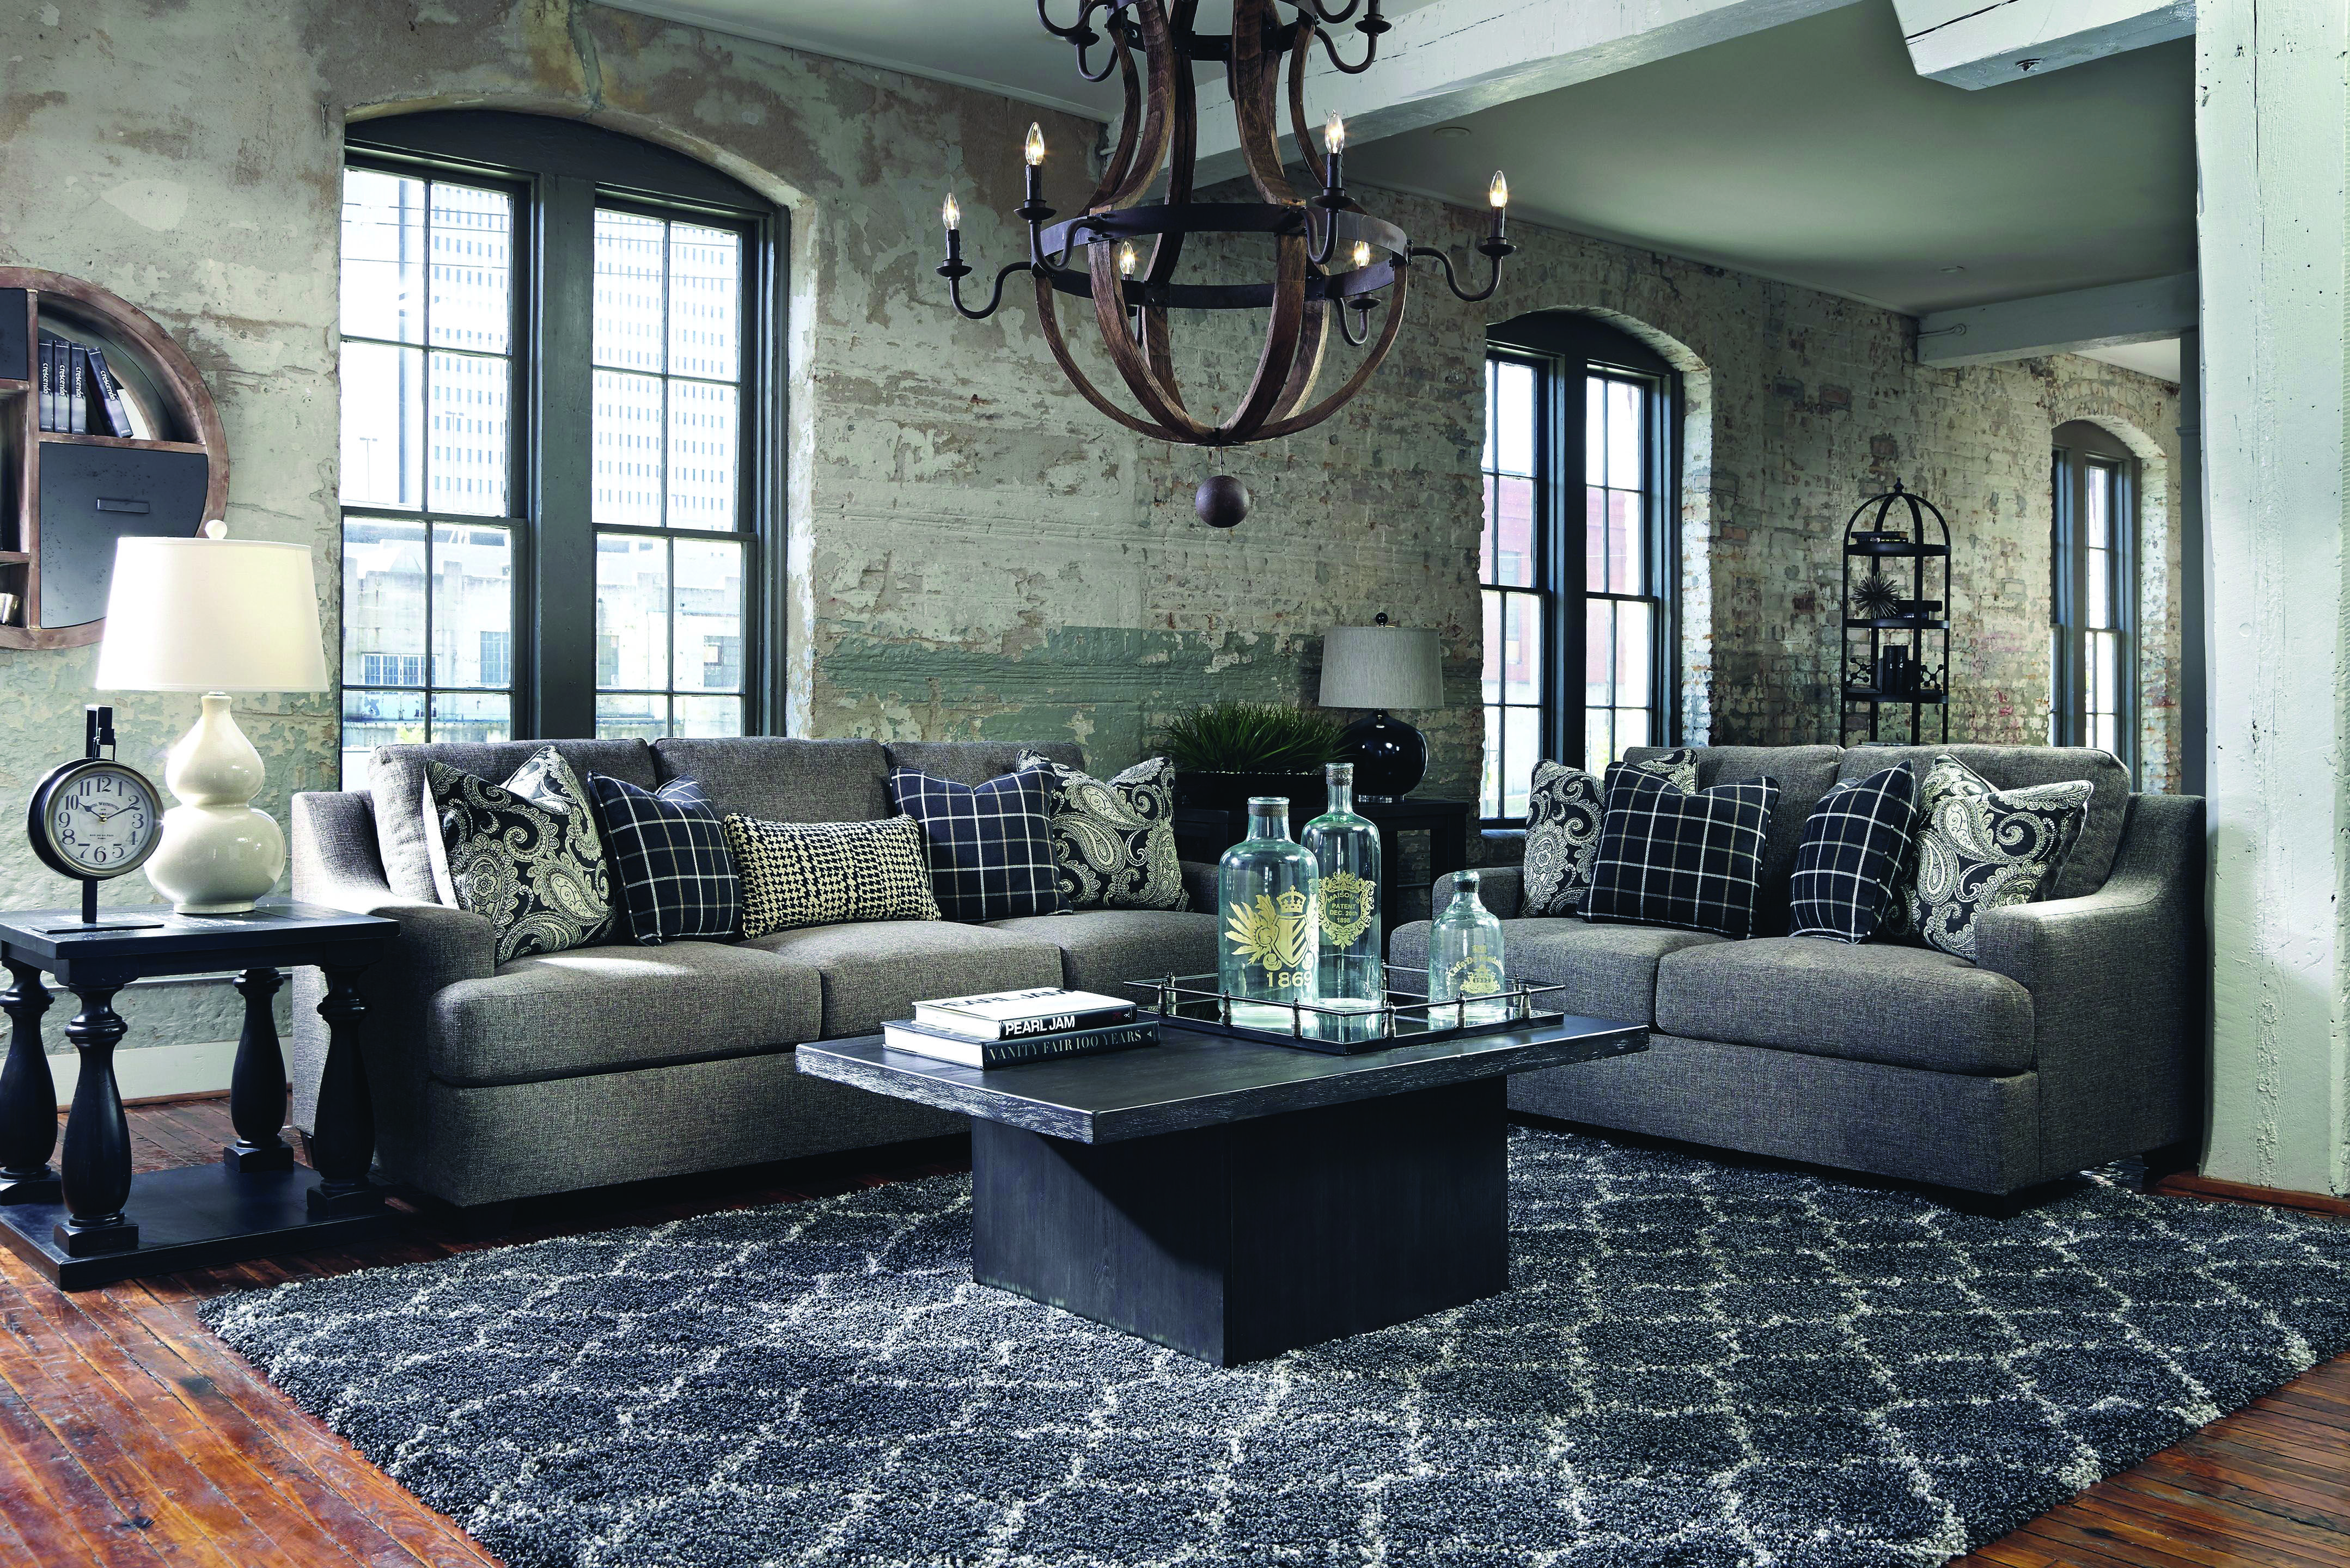 Little Sitting Room Suggestions For A Cute Small And Cosy Space Leather Living Room Furniture Living Room Grey Home Living Room